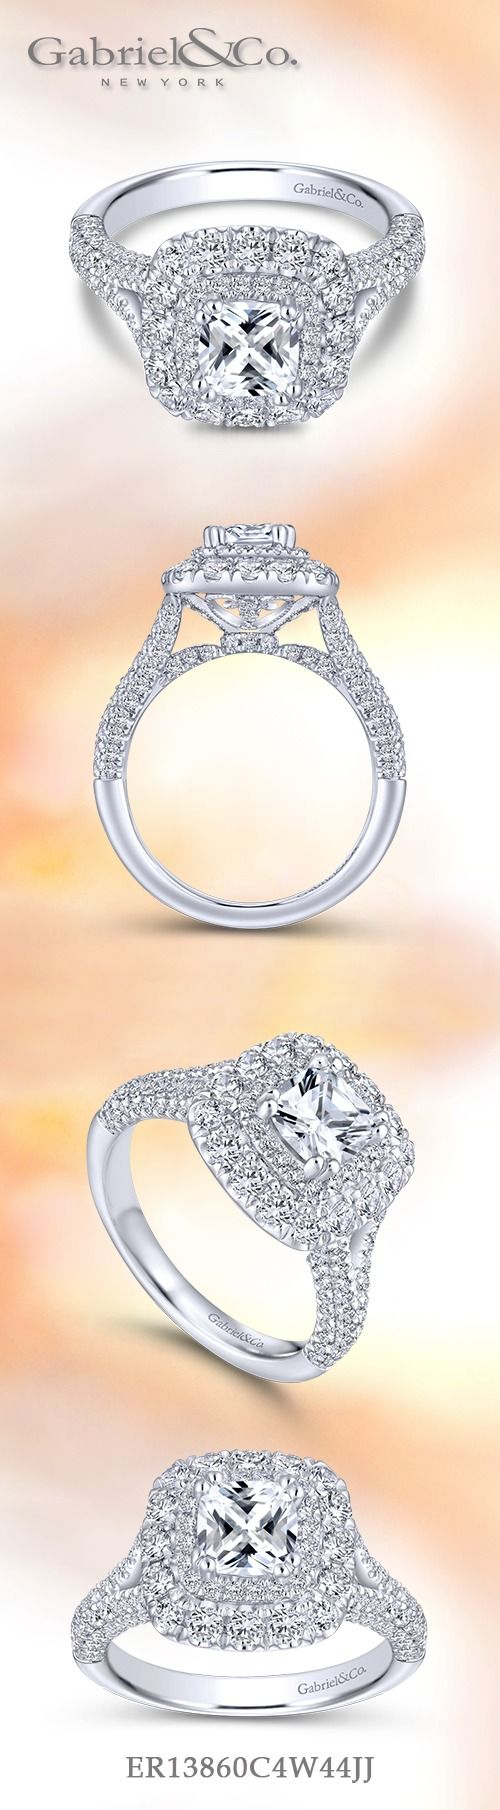 best jewelry images on pinterest rings crowns and diamond rings